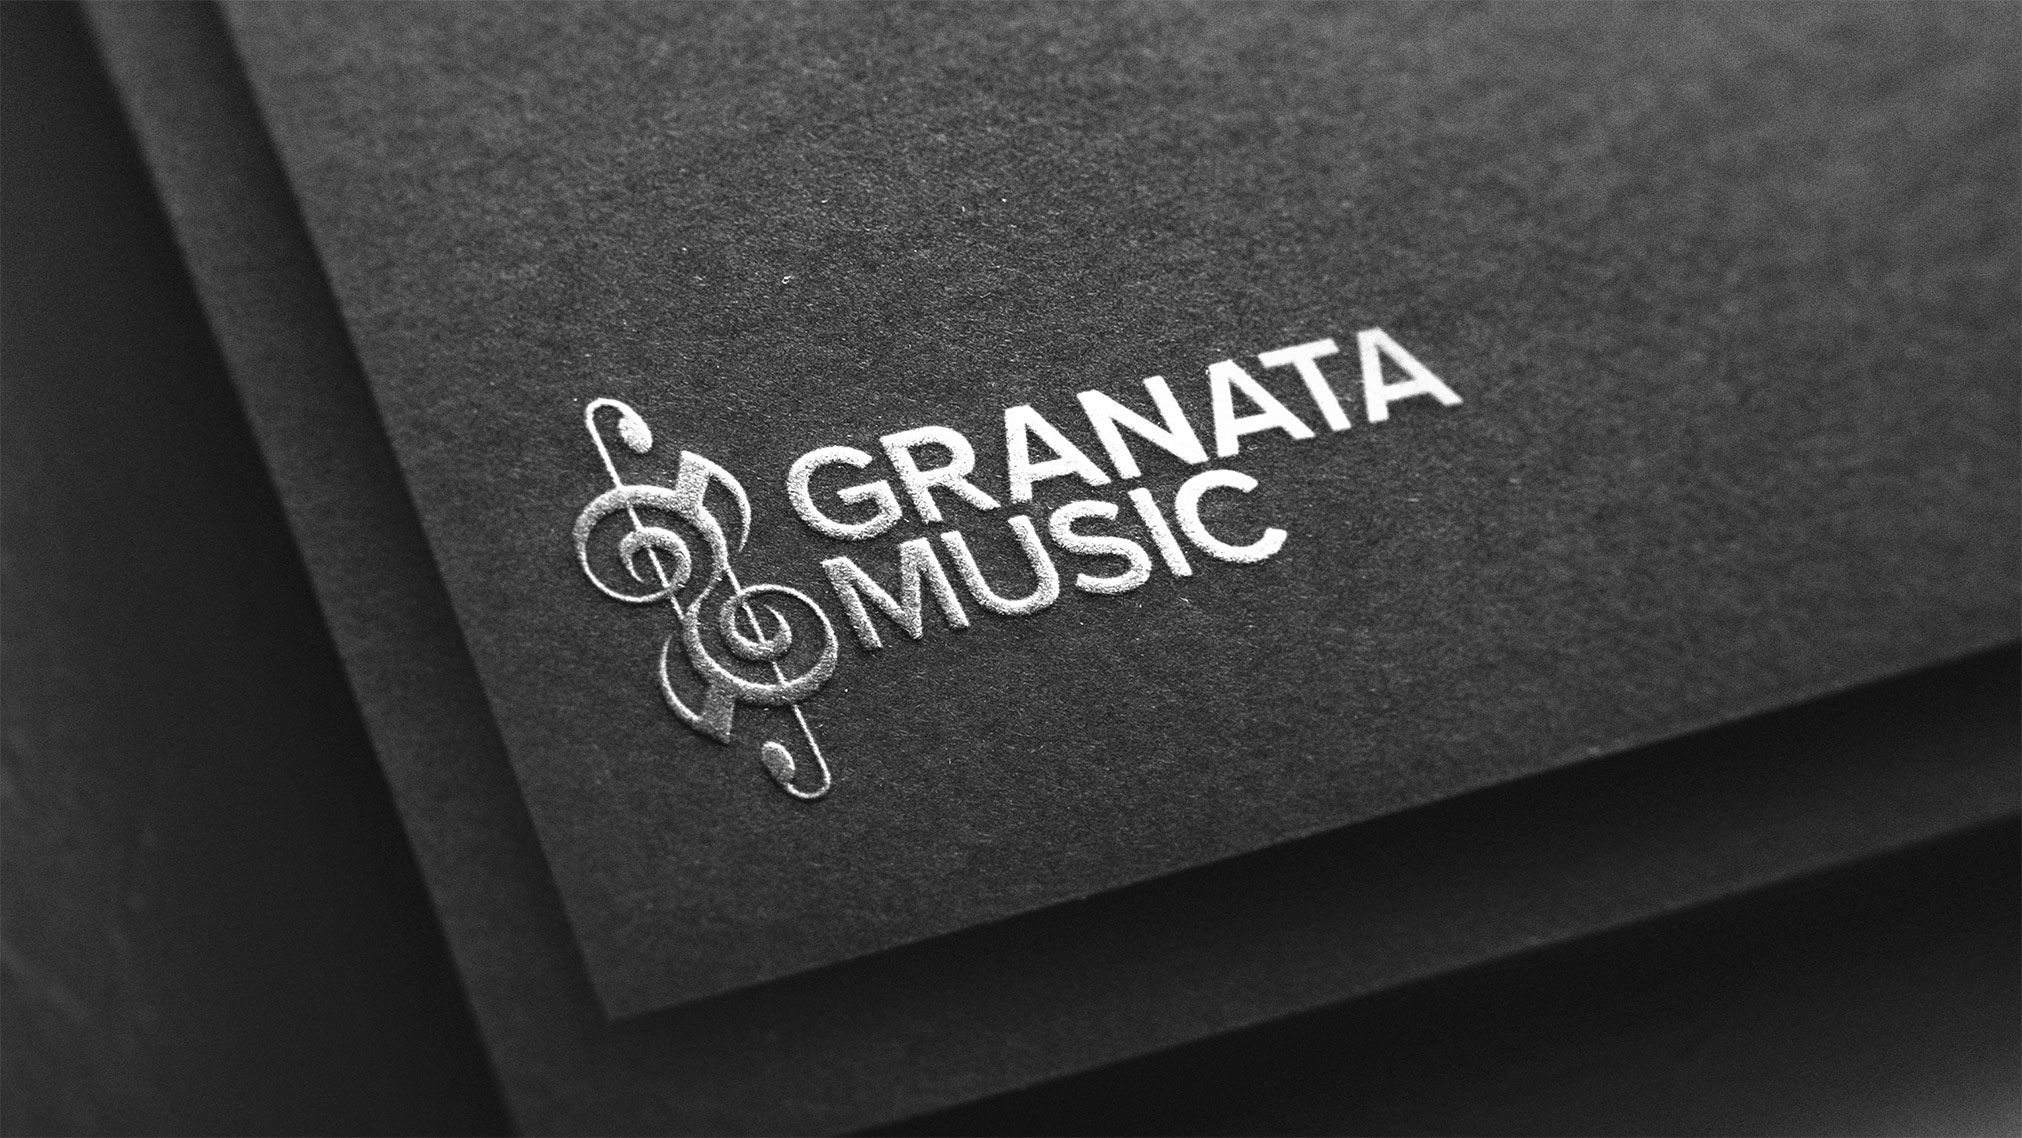 A logo concept I designed for a local music shop. This project also included a brand guide and stationery.